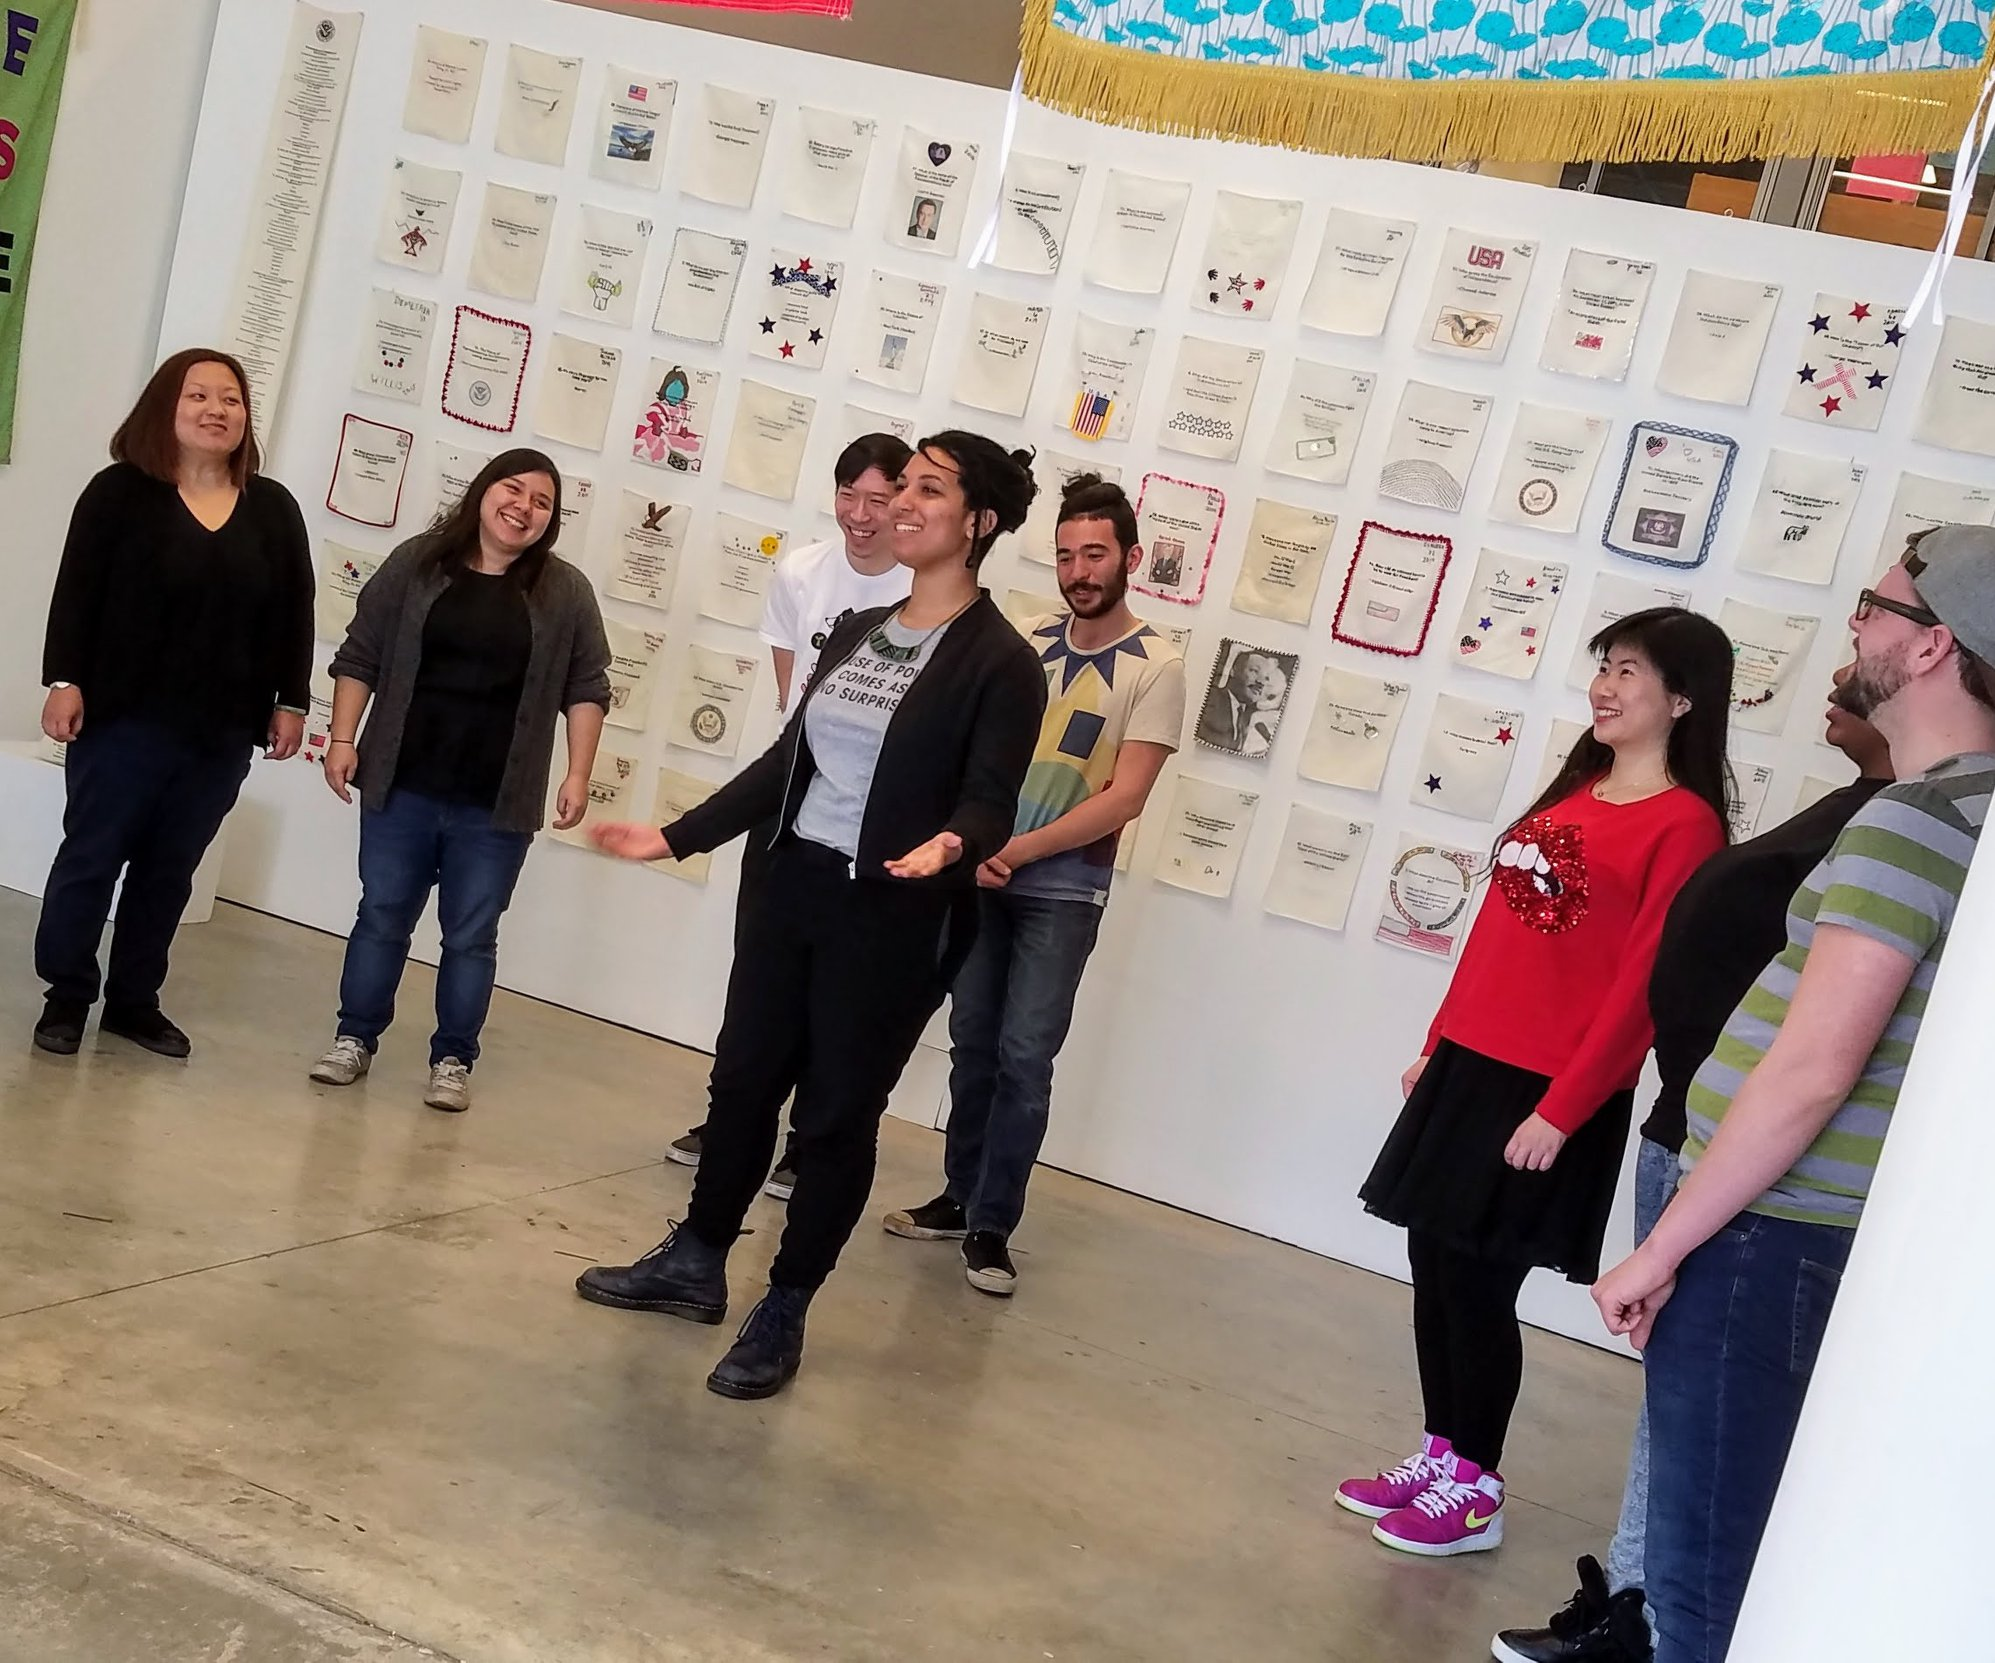 Performers work-shopping songs for the Asian Arts Initiative´s ´Activist Songbook.´